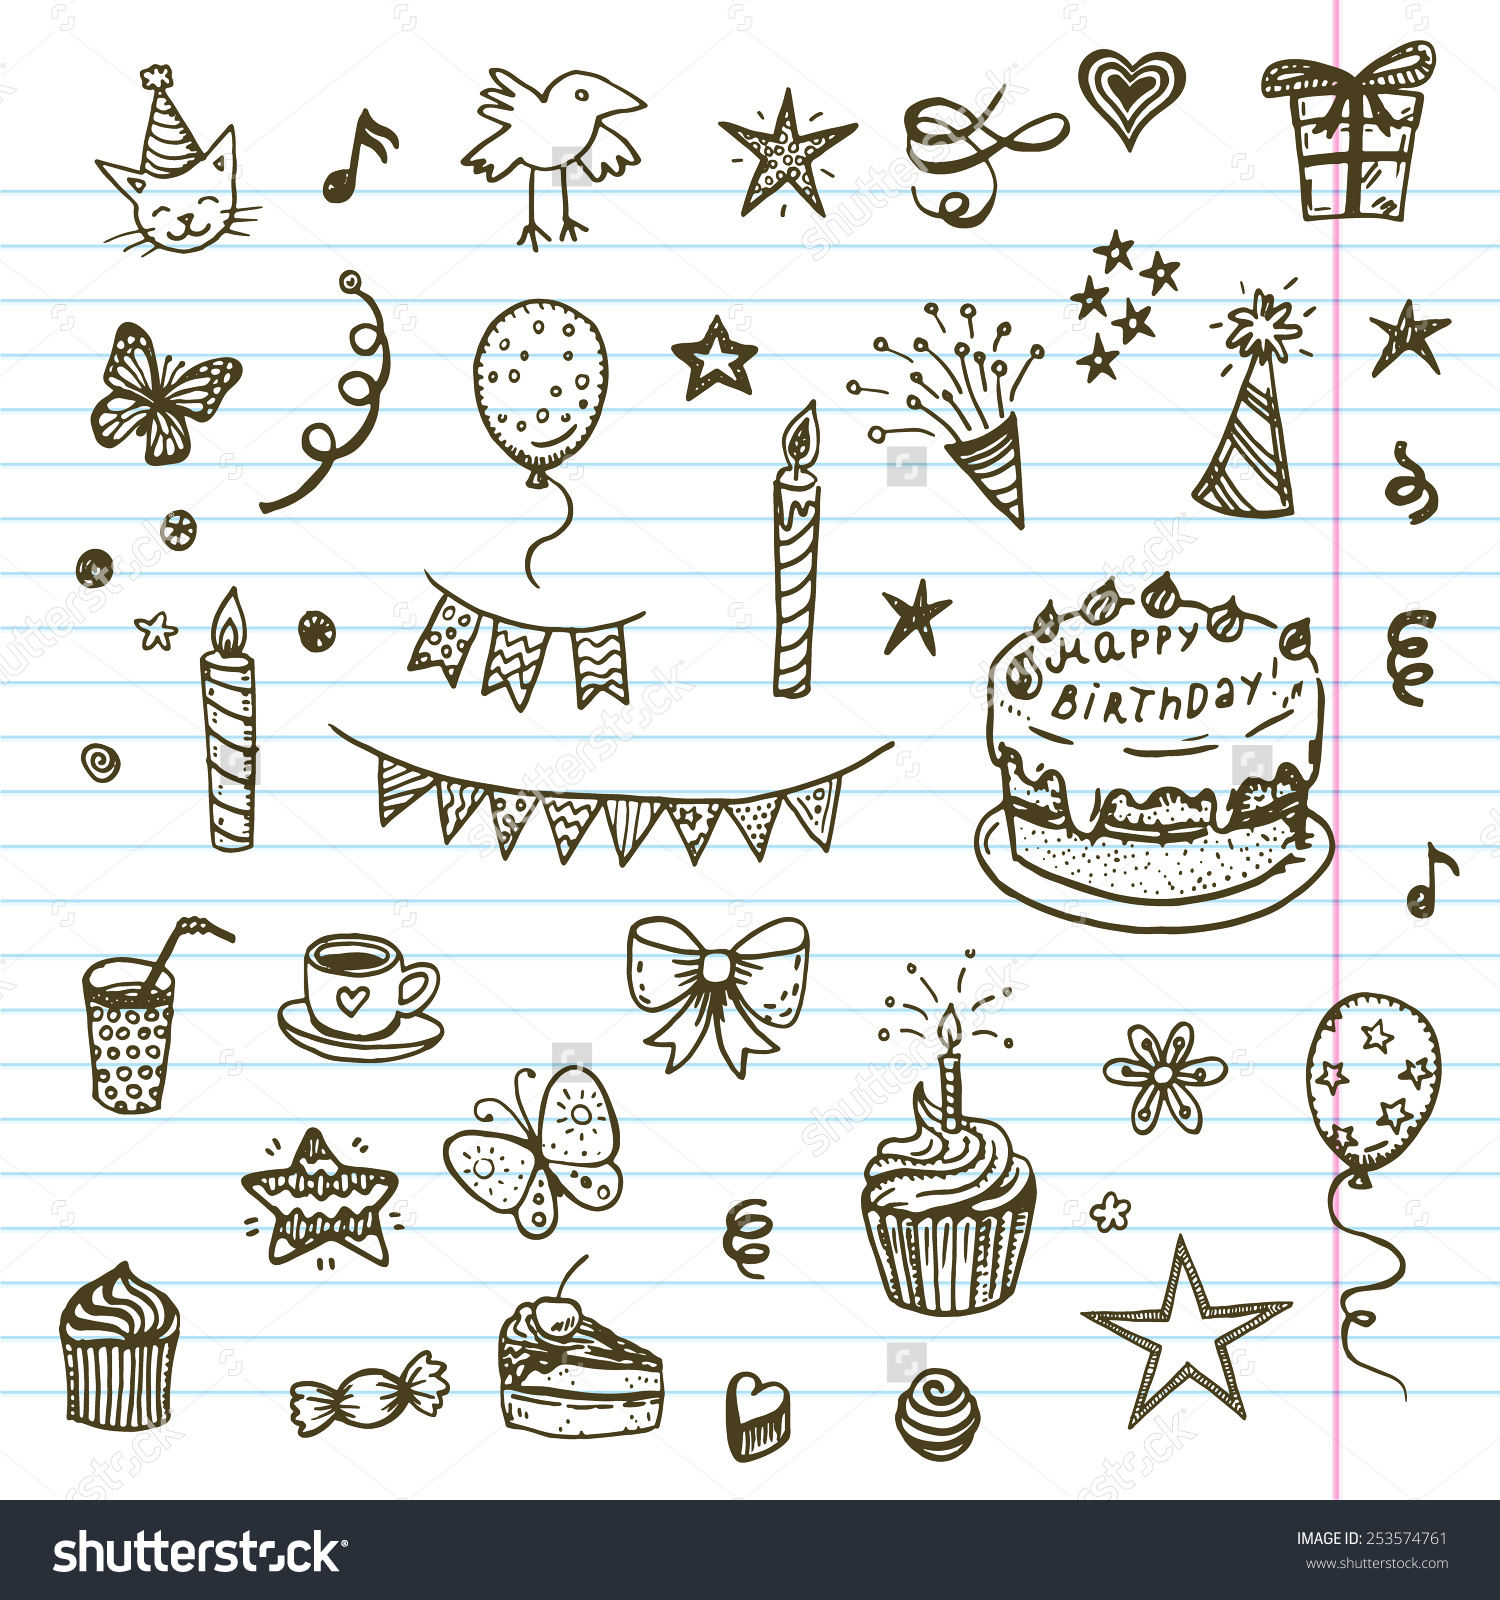 1500x1600 Birthday Elements Hand Drawn Set With Cake Balloons